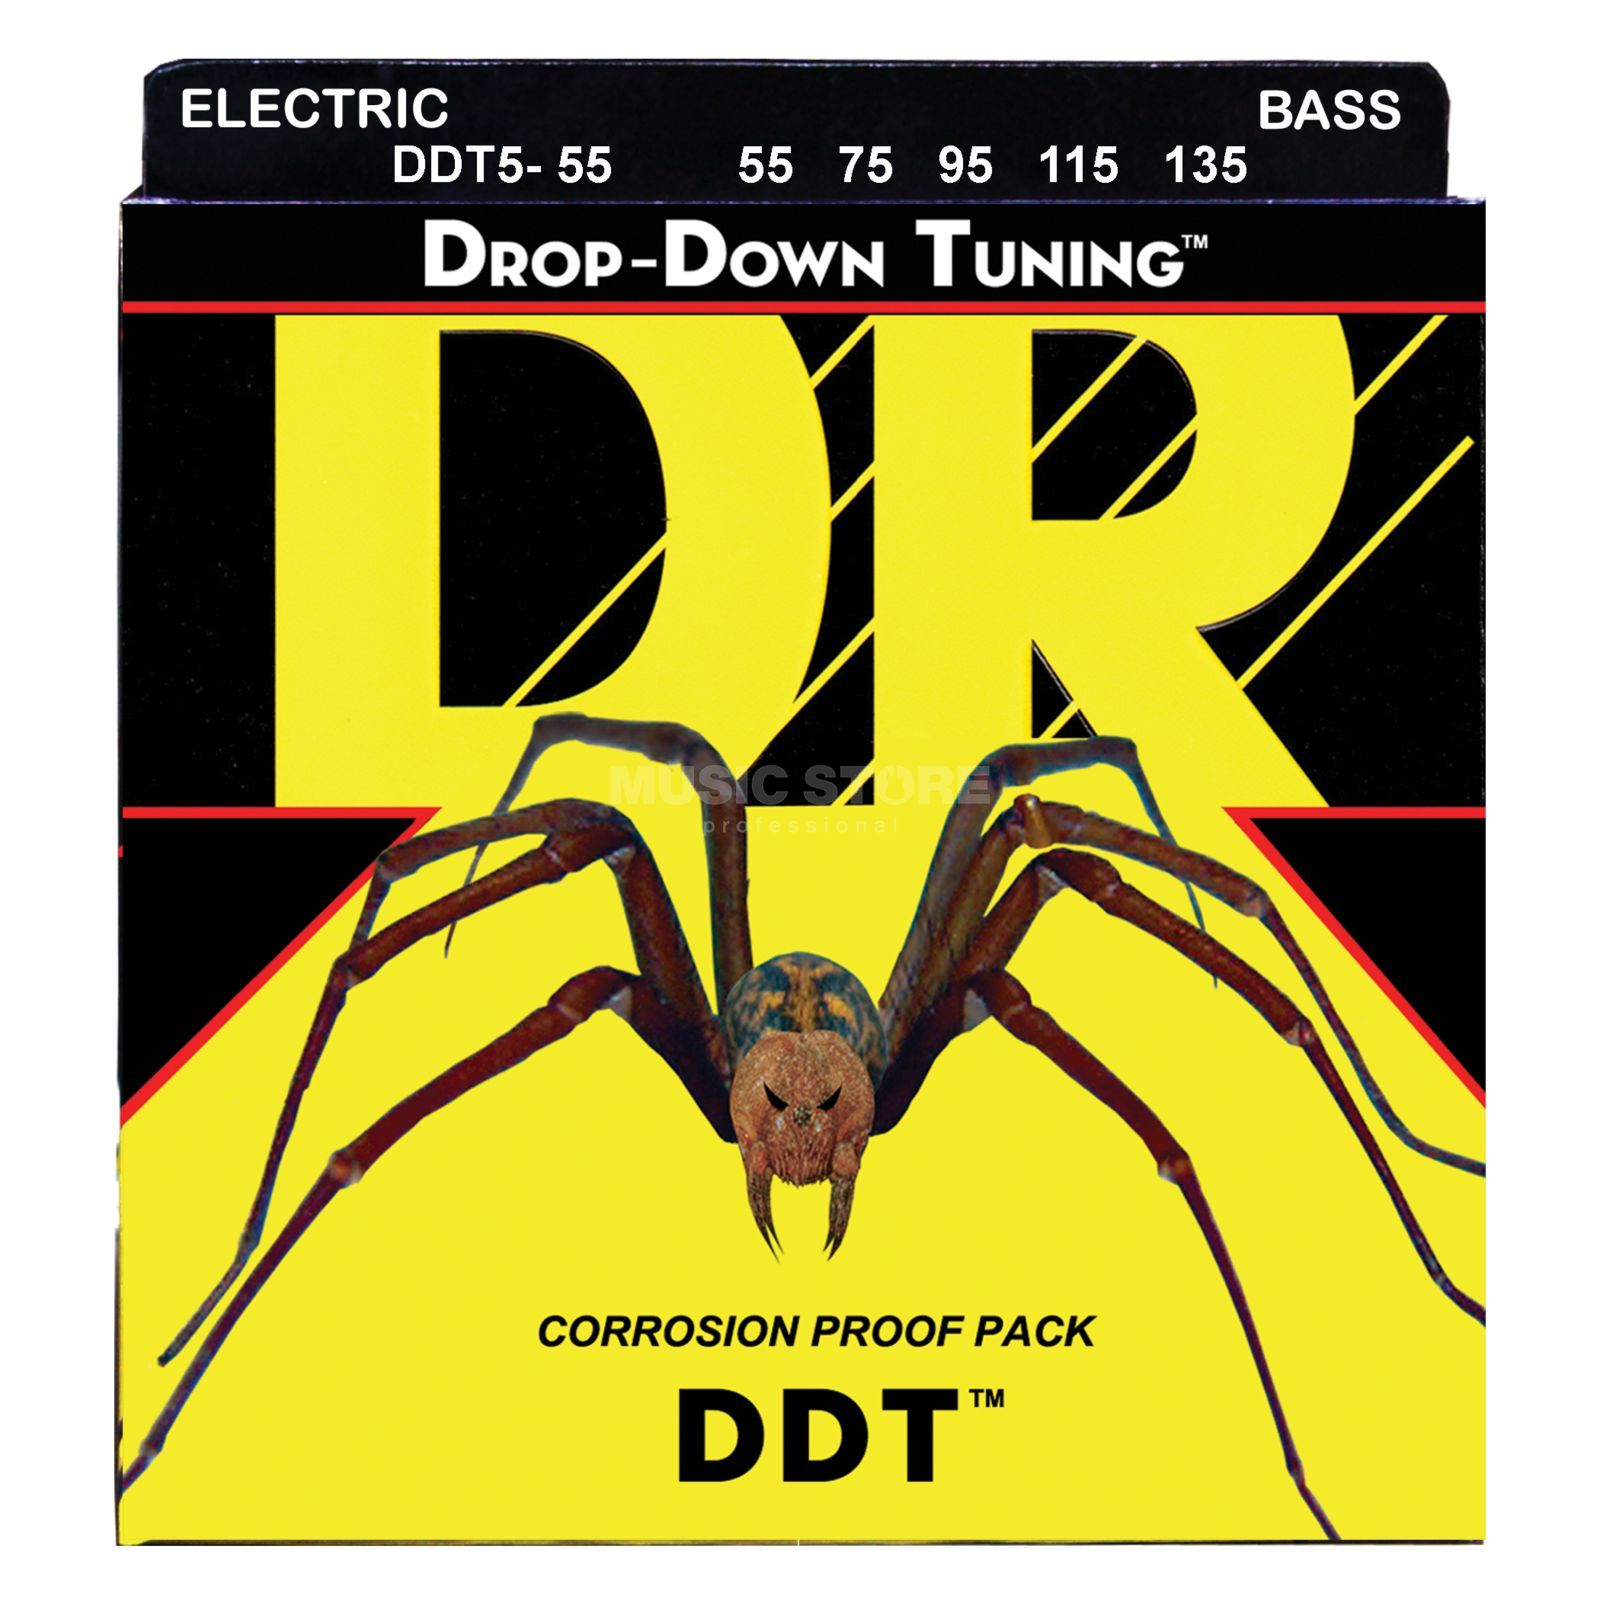 DR 5 Bass Strings 55-135 Drop-Down Tuning DDT5-55 Zdjęcie produktu